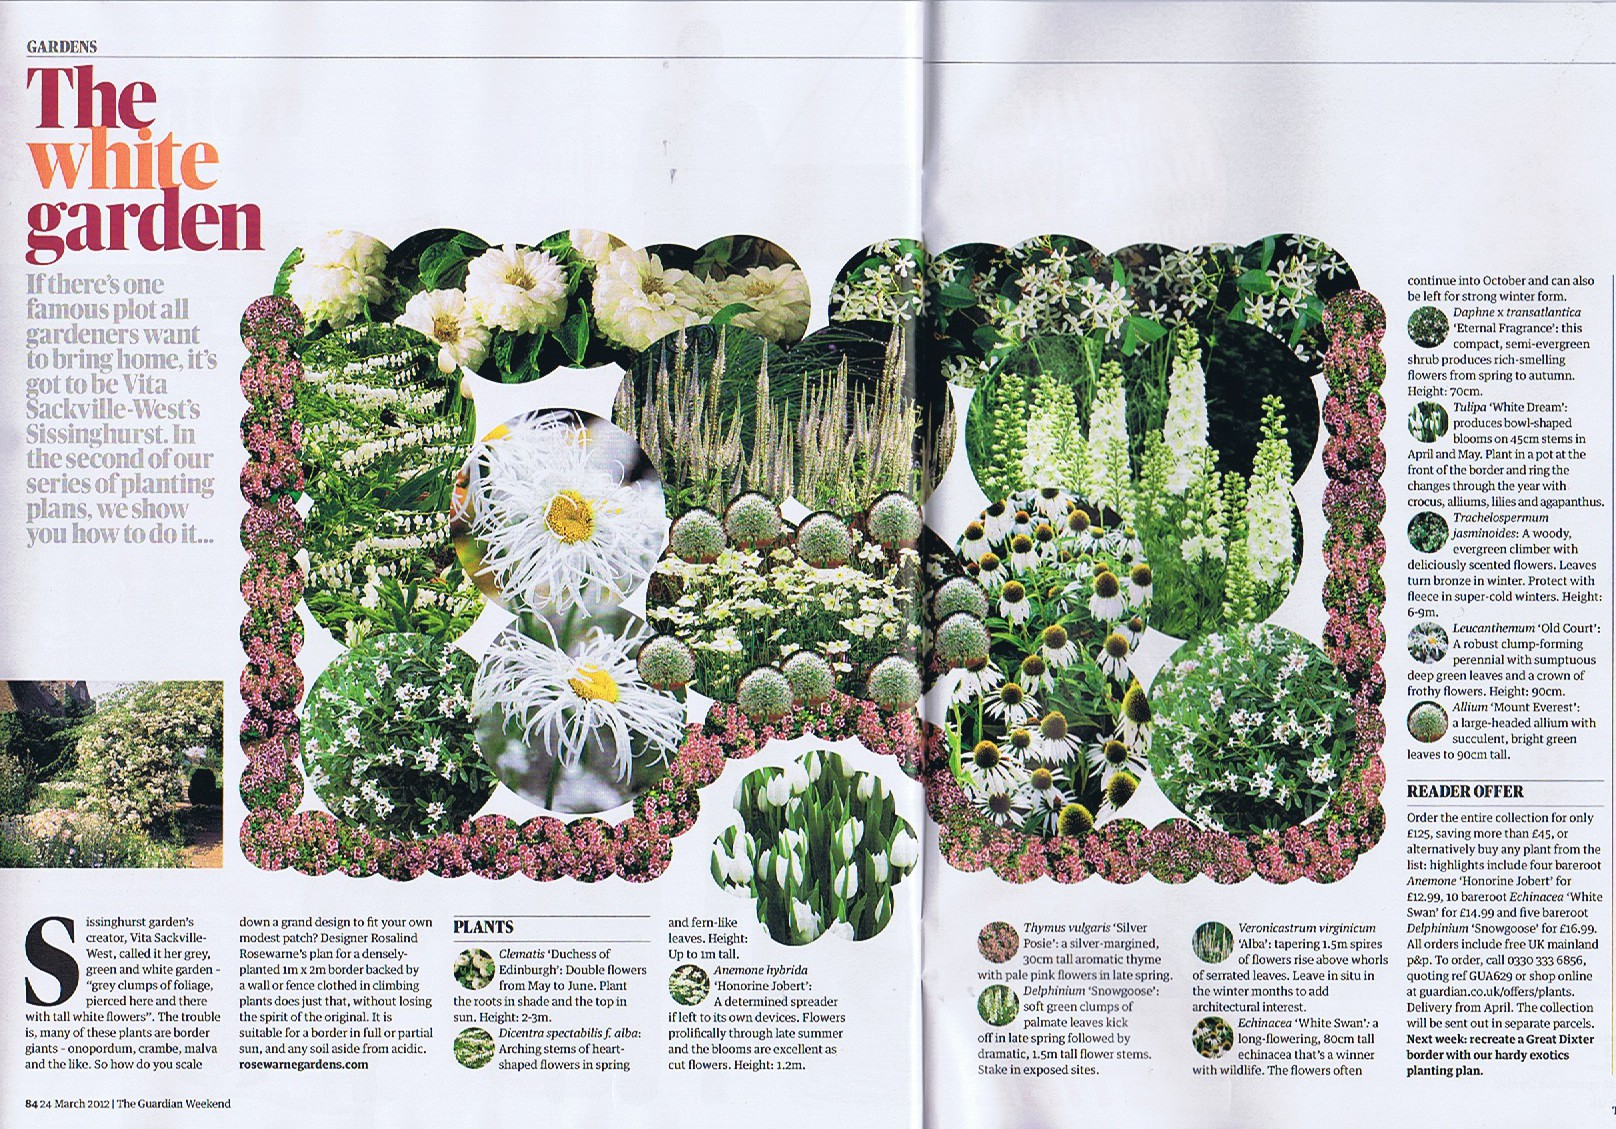 Press rosewarne garden designs the white garden guardian weekend magazine 24032012 mightylinksfo